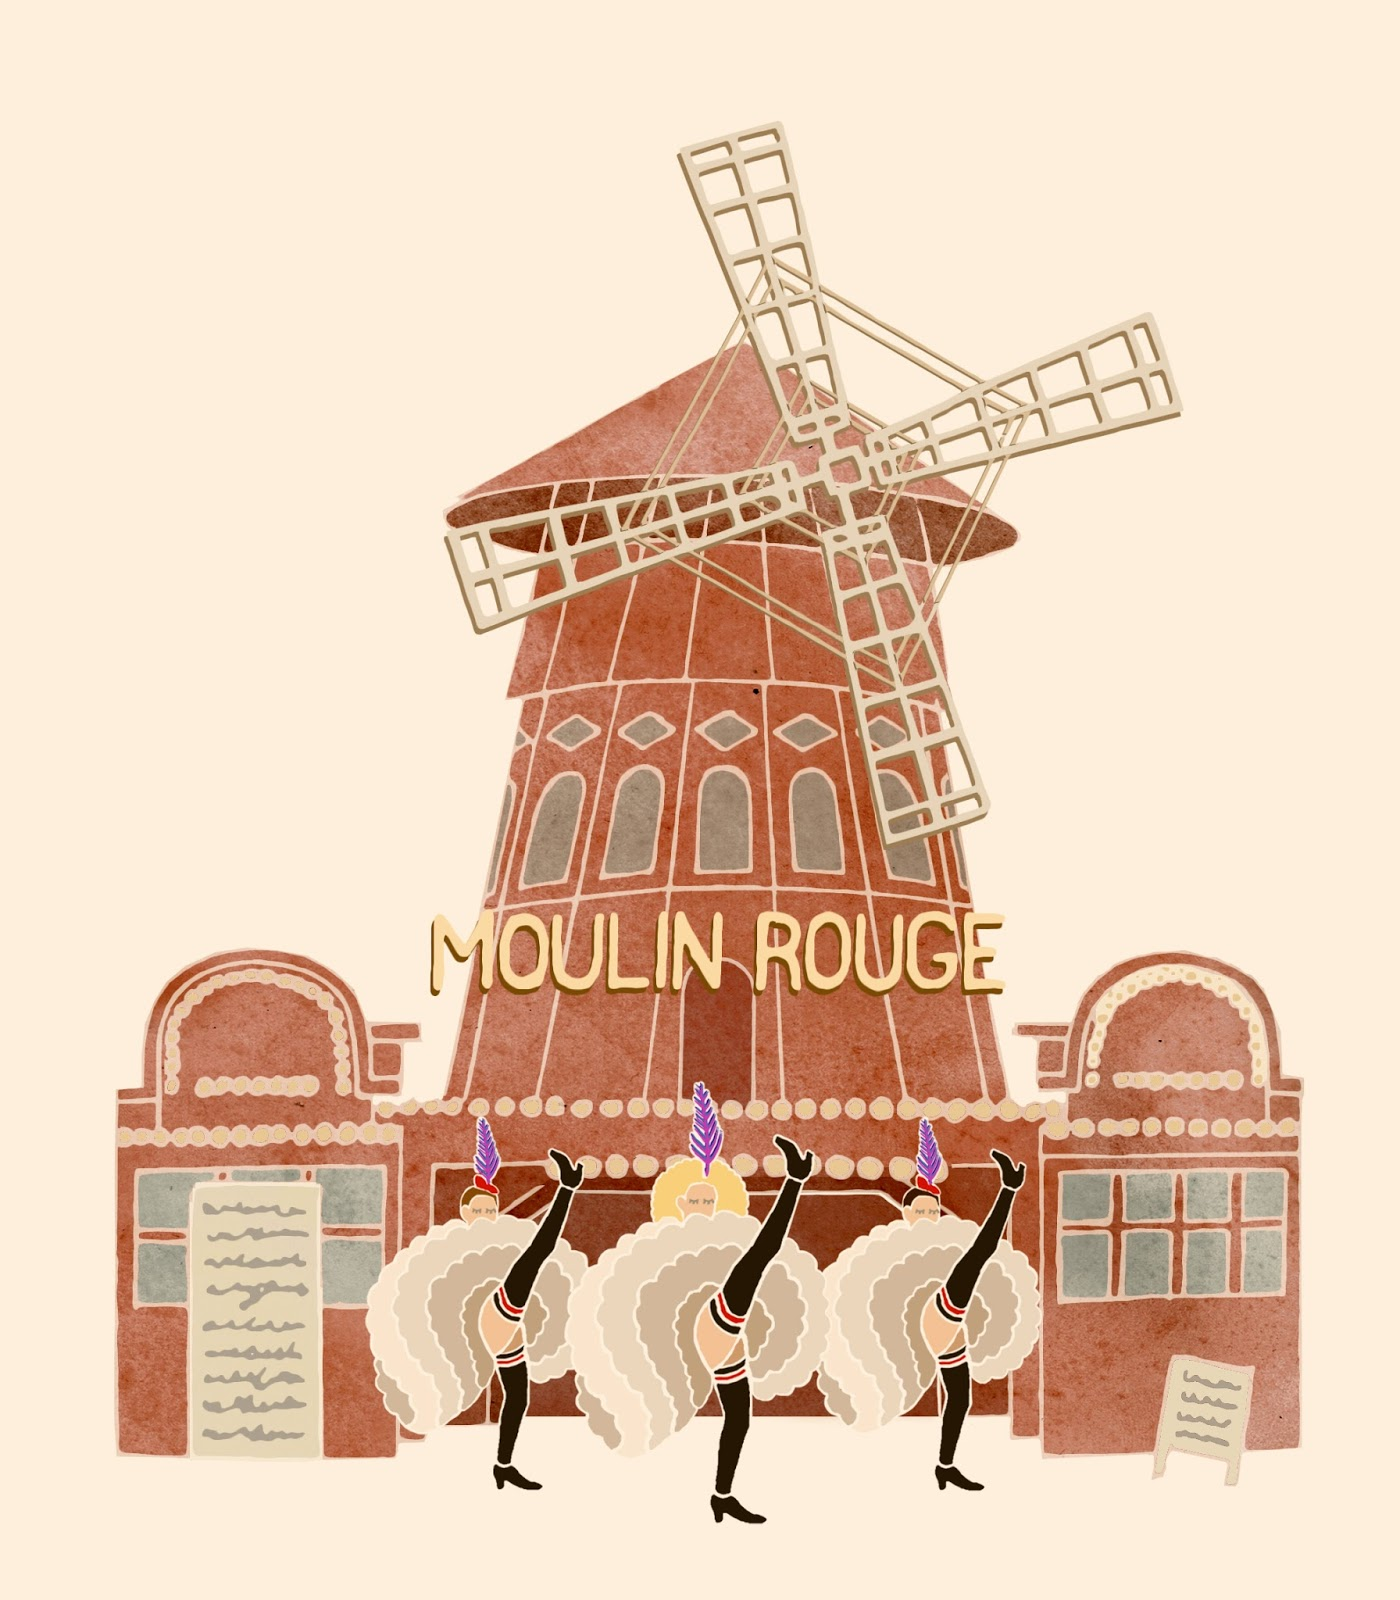 essay with moulin rouge